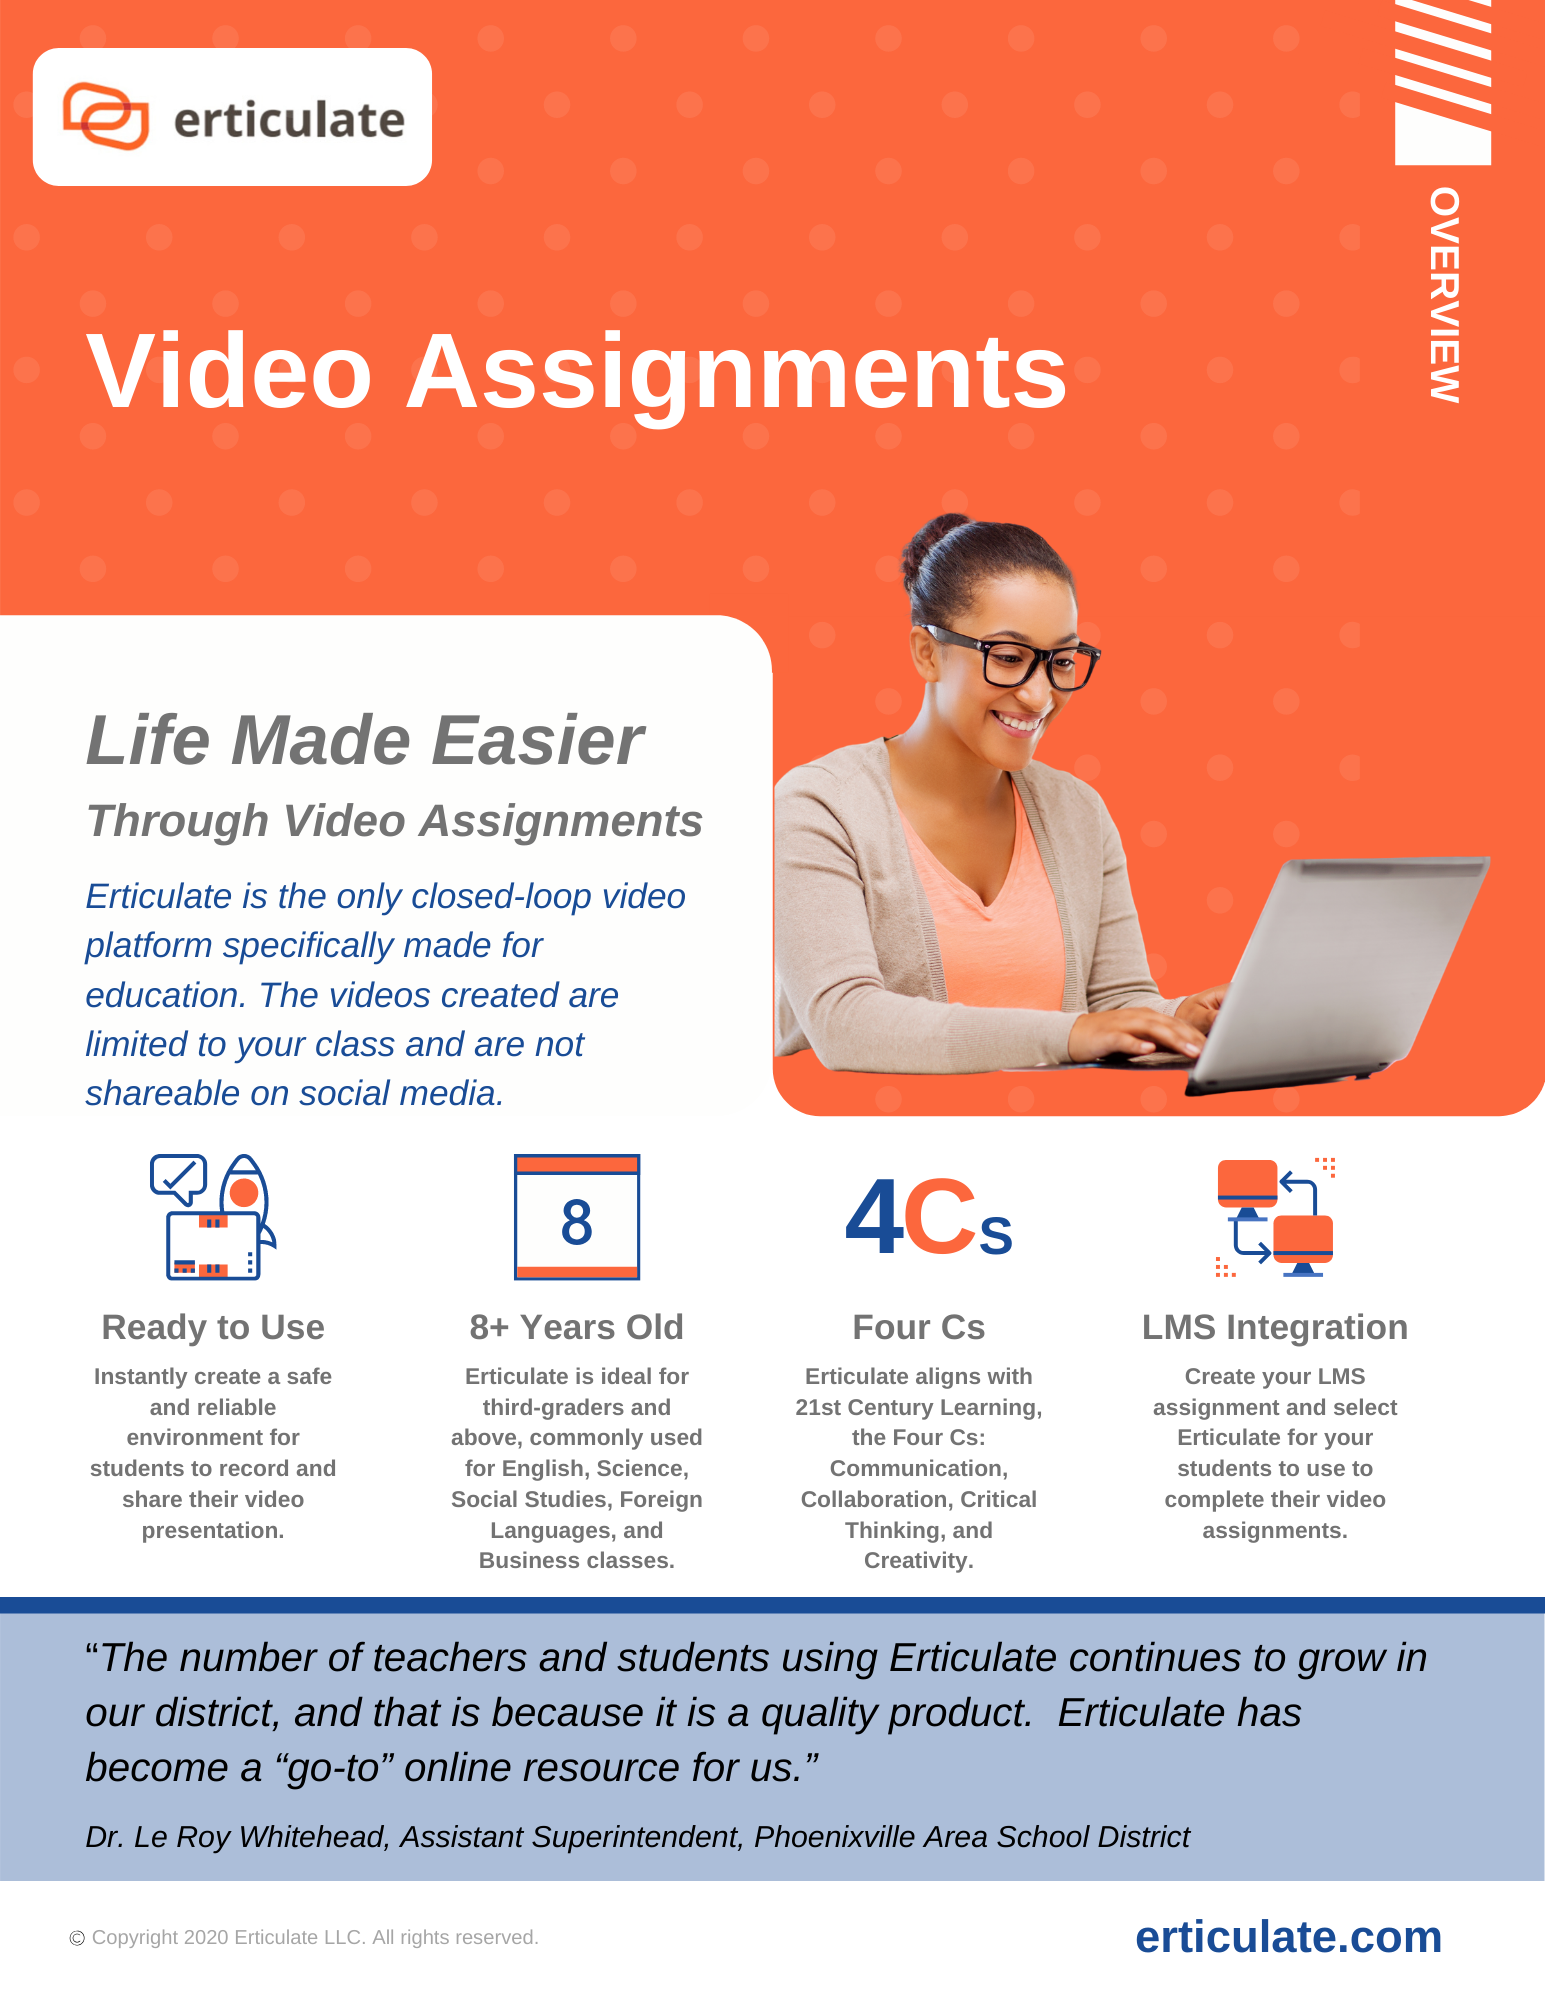 Erticulate - Video Assignments Product Sheet